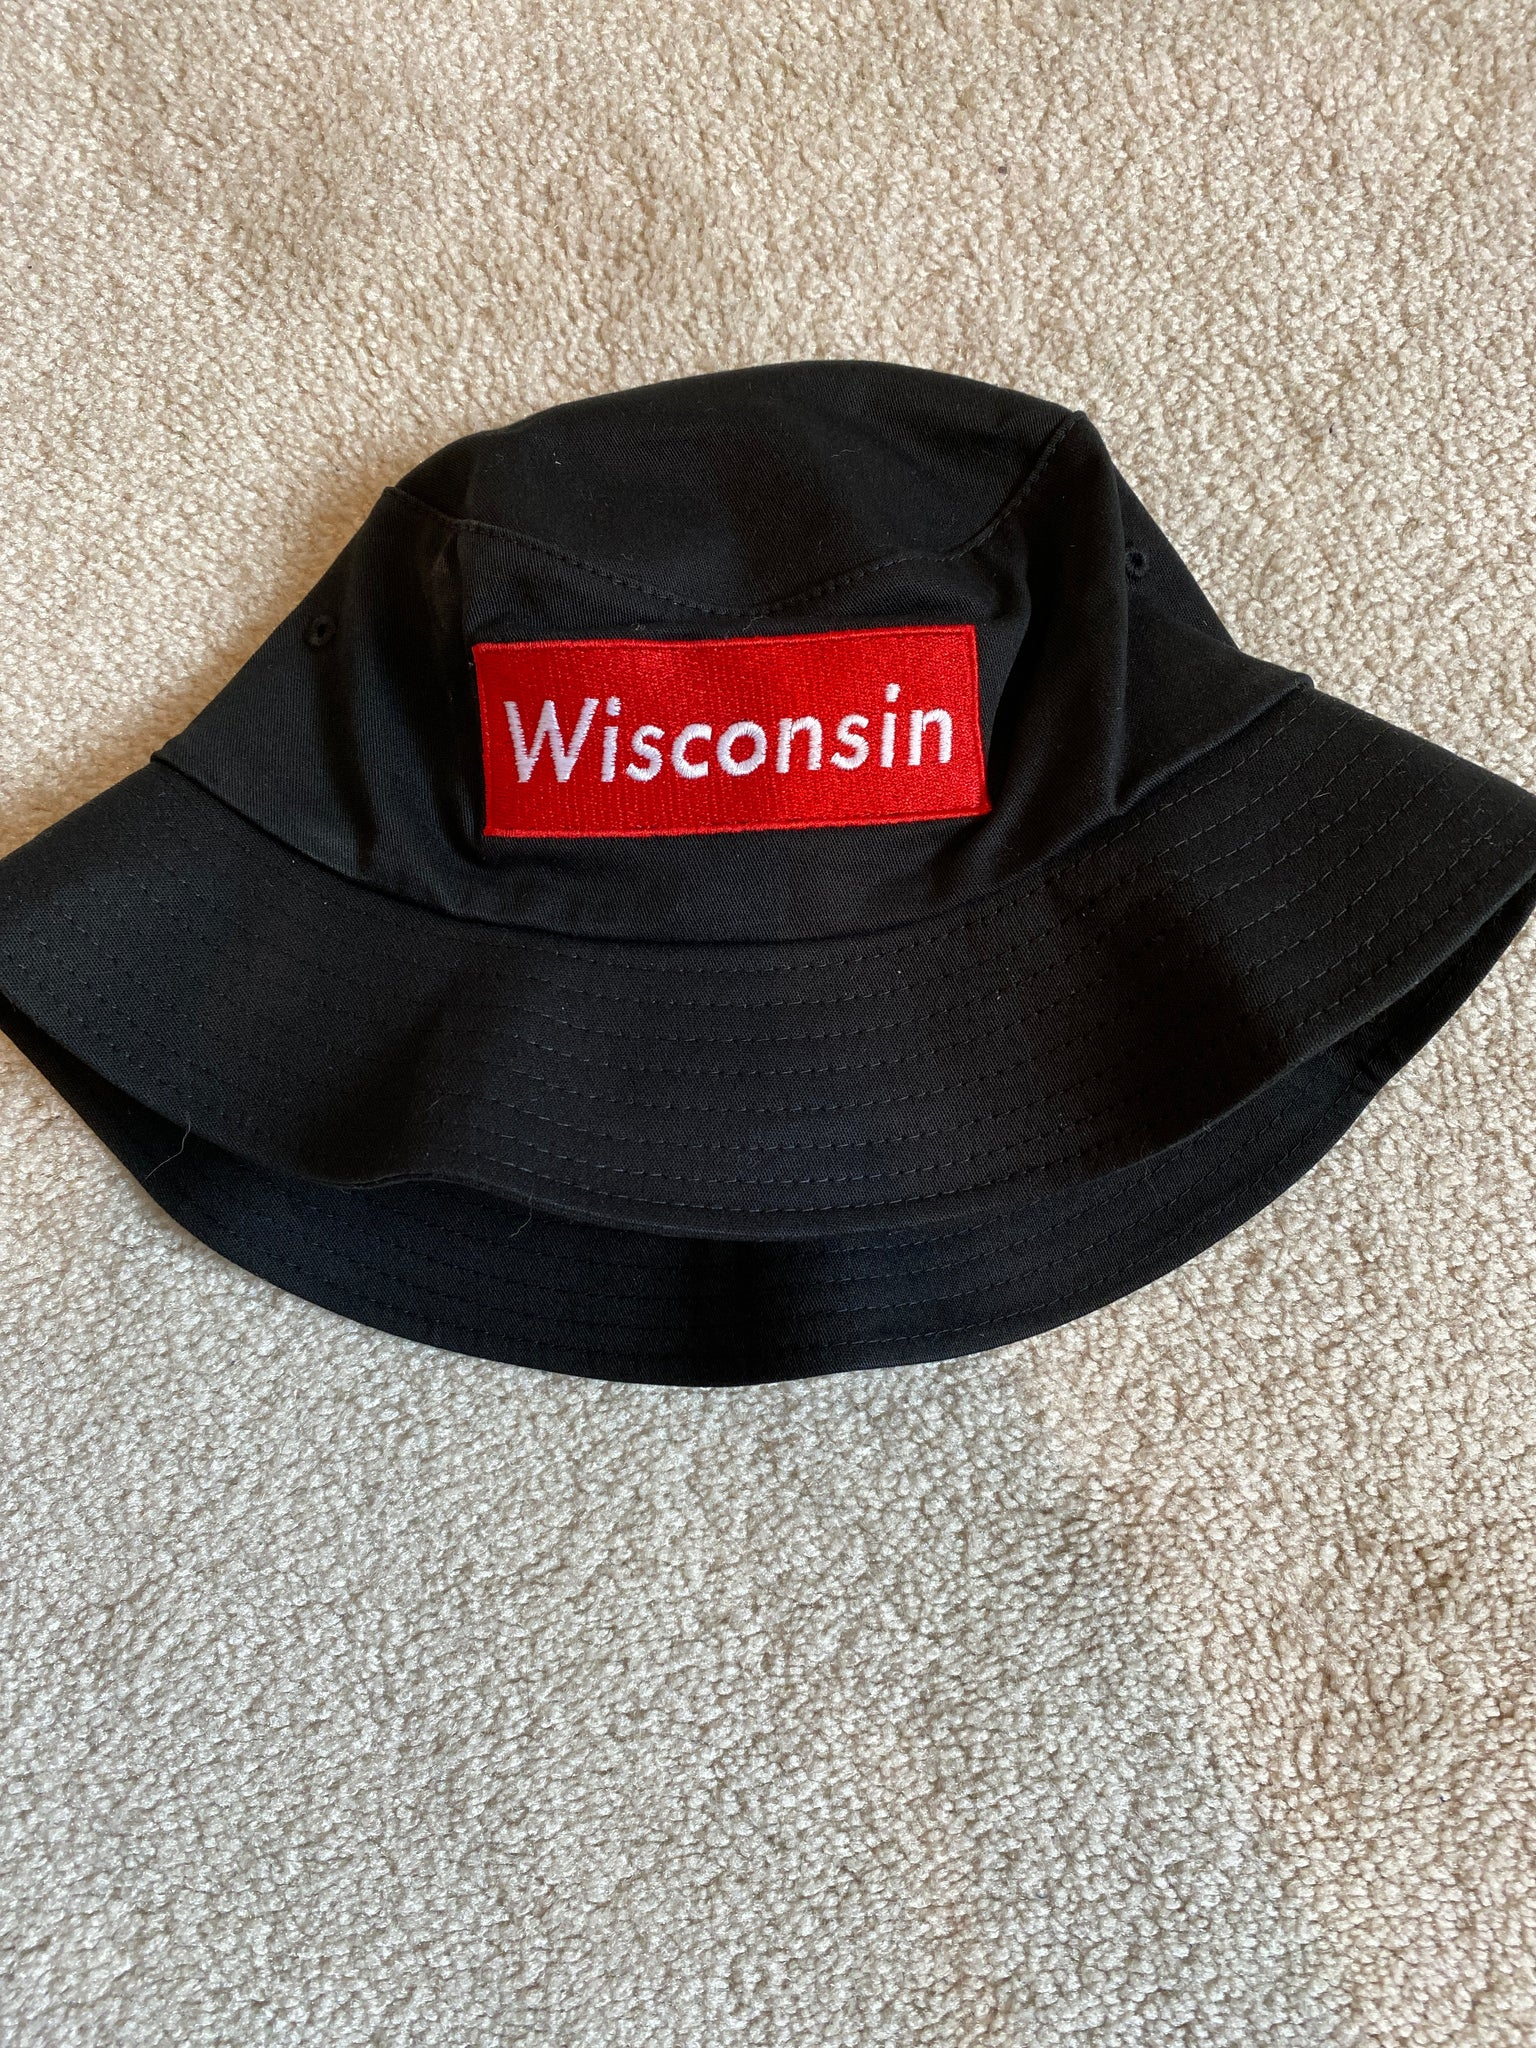 Wisconsin Patched Bucket Hat